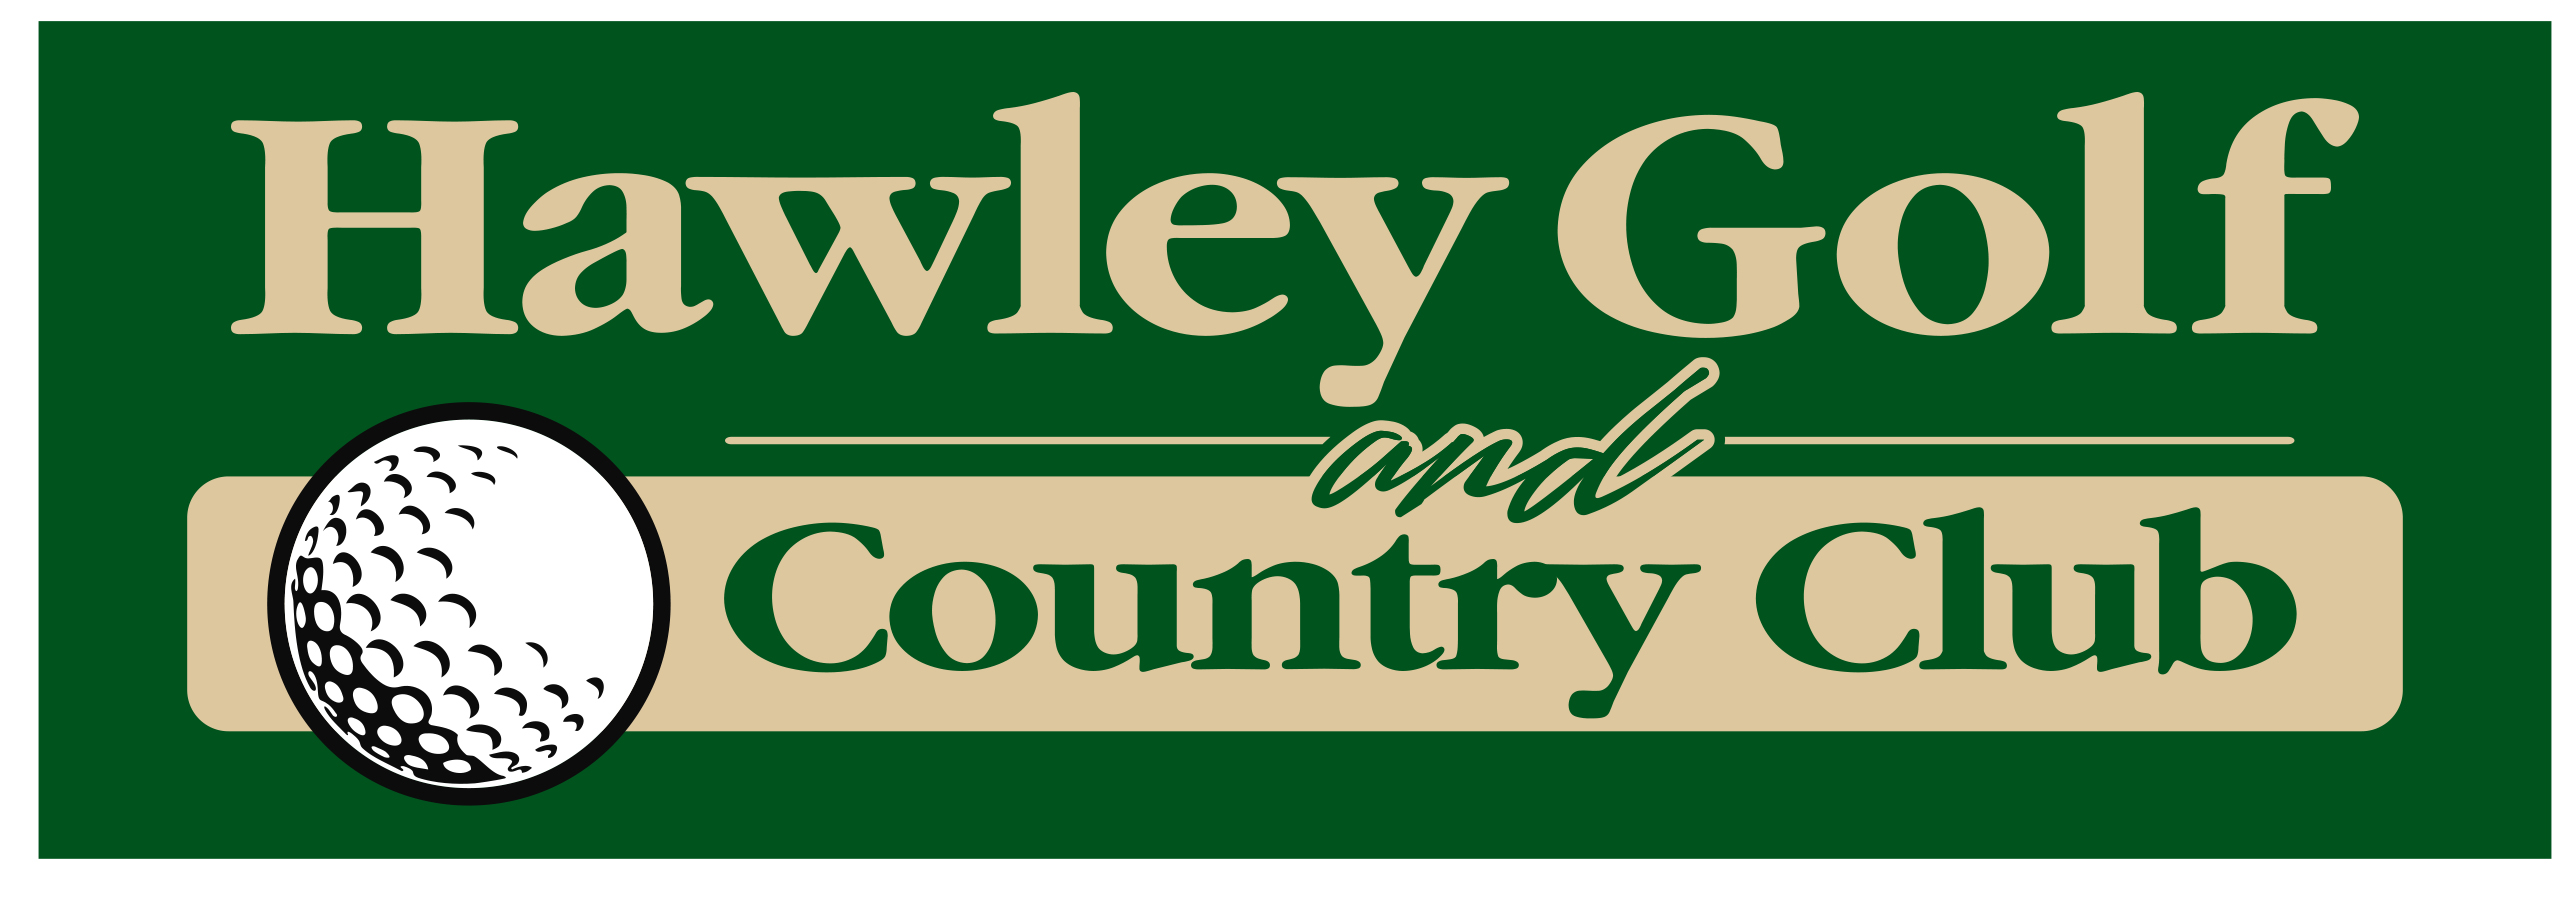 Hawley Golf & Country Club